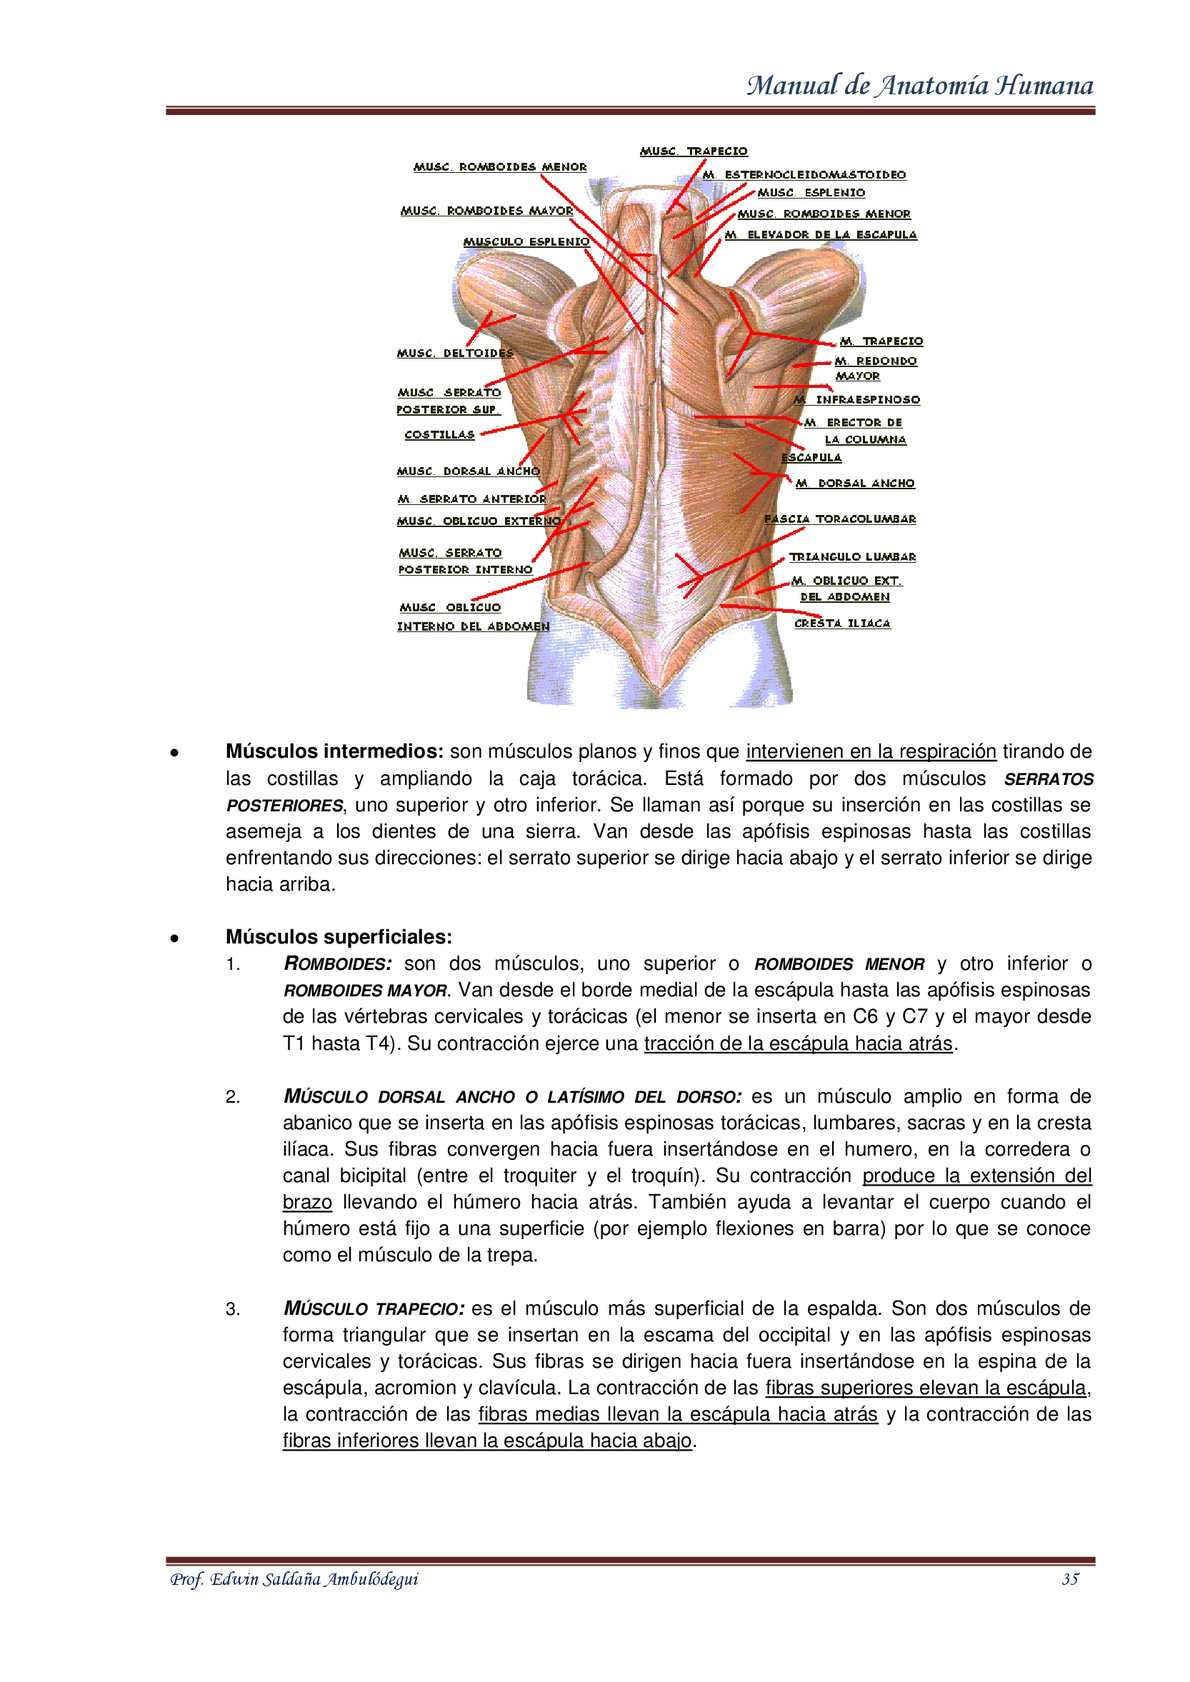 Manual de anatomia humana Edwin Ambulódegui - CALAMEO Downloader